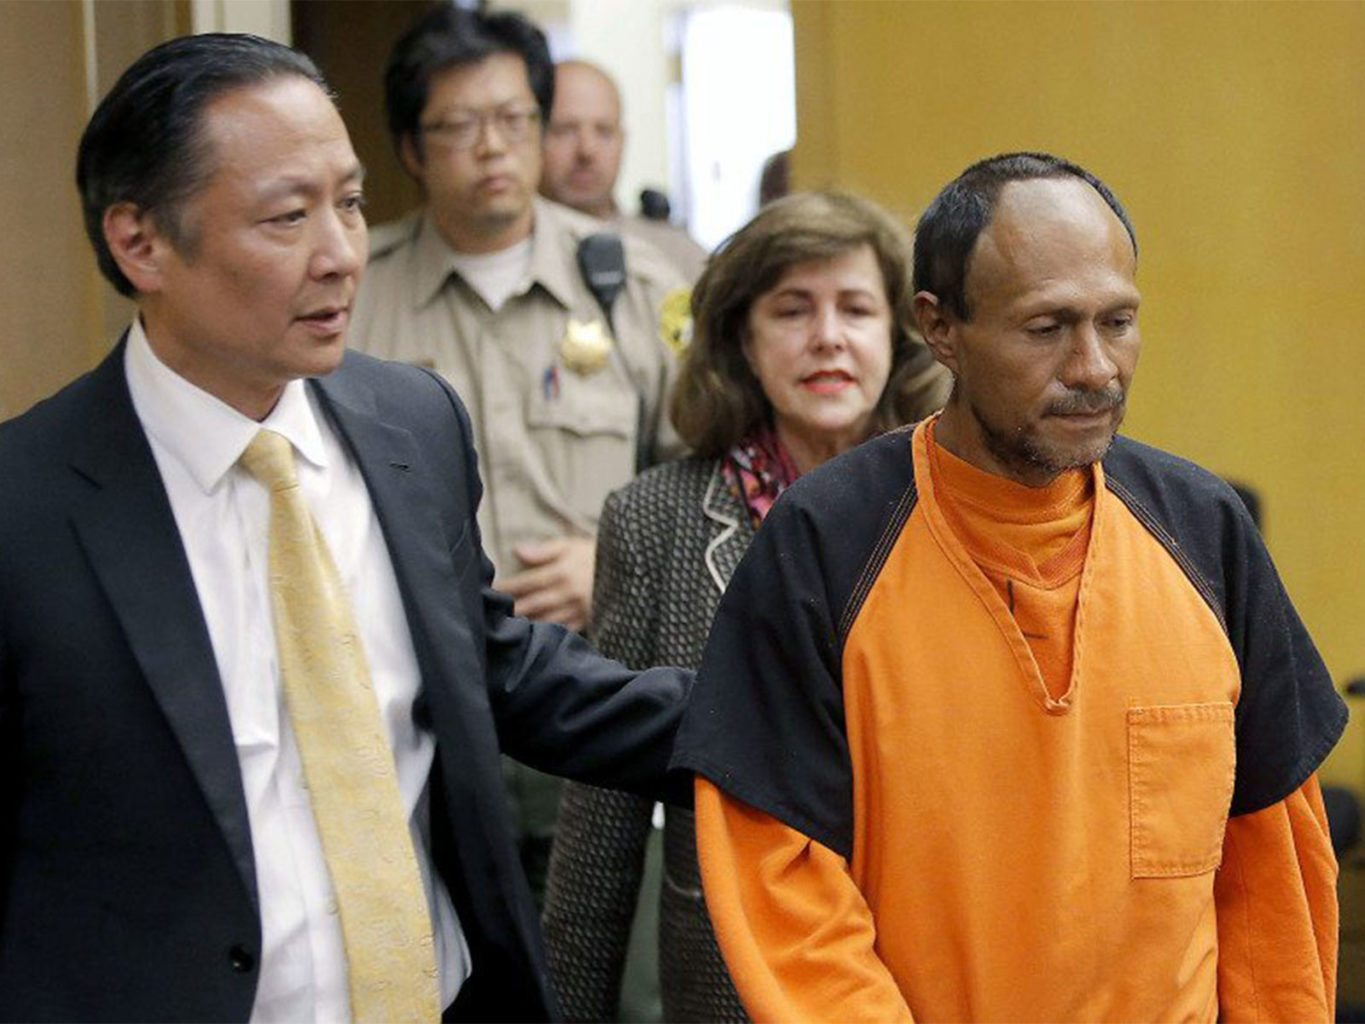 Juan Francisco Lopez-Sanchez, right, is lead into the courtroom by San Francisco Public Defender Jeff Adachi, left, and Assistant District Attorney Diana Garcia for arraignment on July 7, 2015. (Michael Macor/2015 San Francisco Chronicle via Pool)